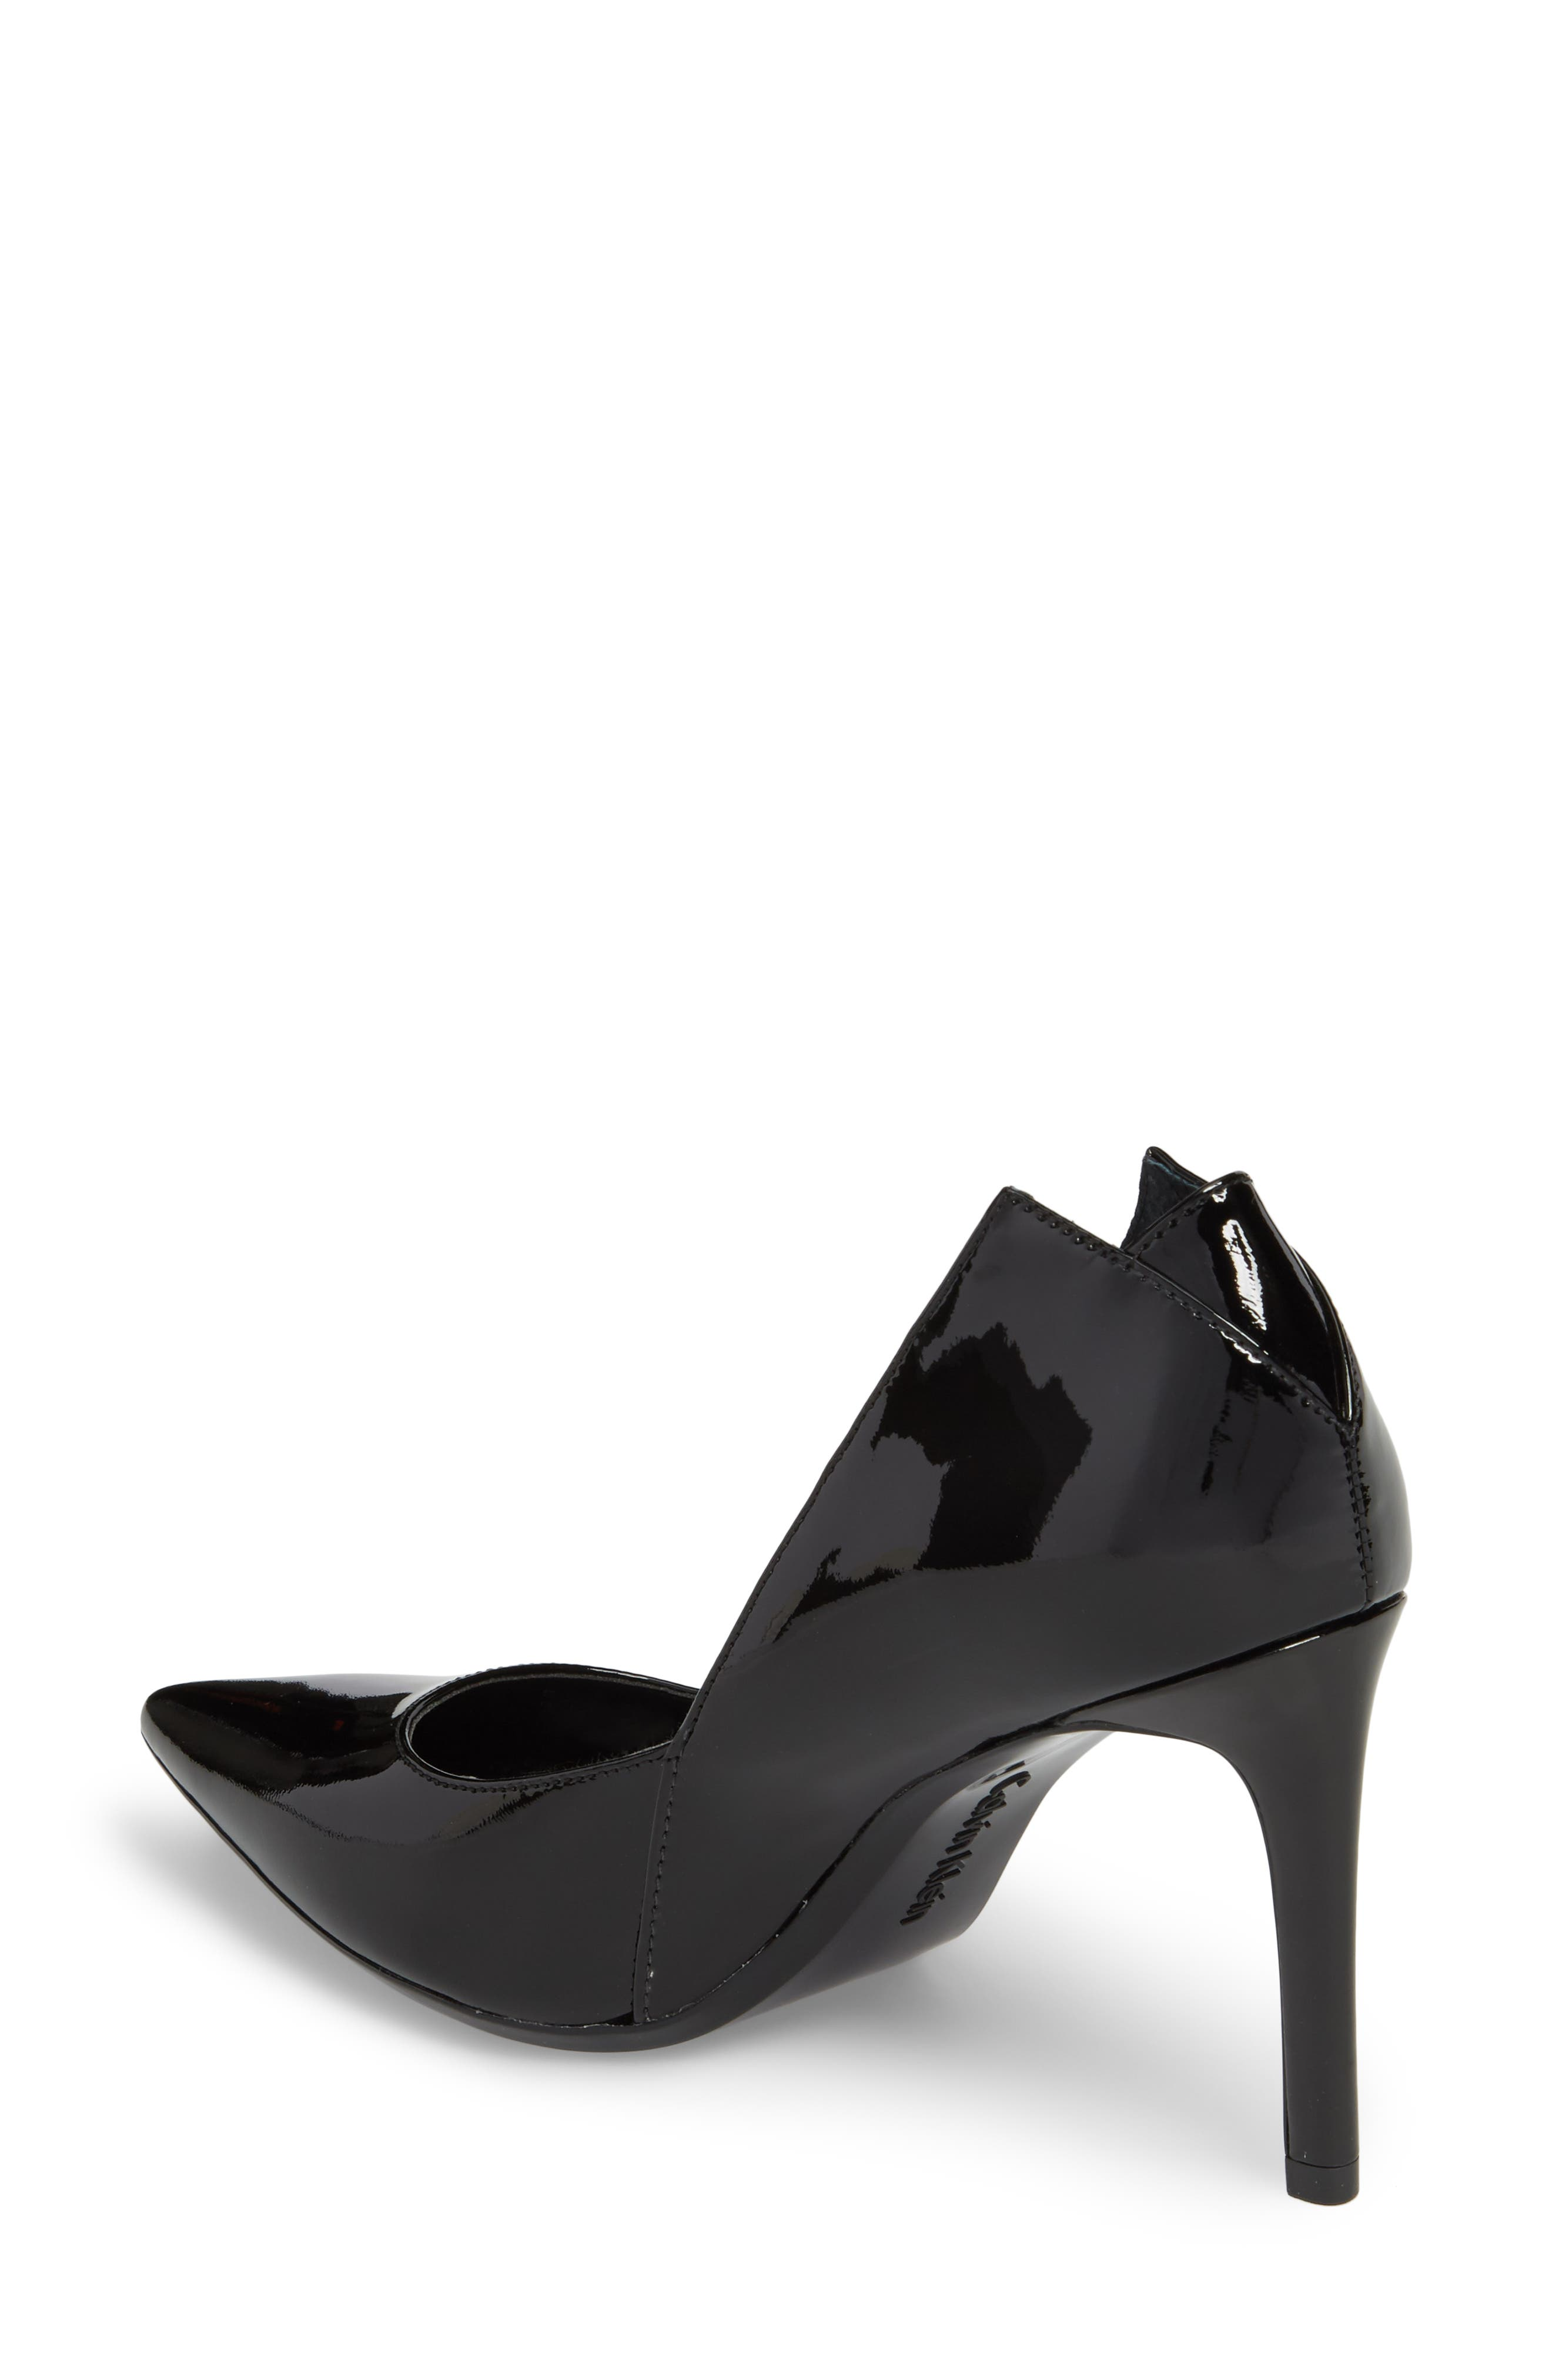 Randa Pointy Toe Pump,                             Alternate thumbnail 2, color,                             Black Leather